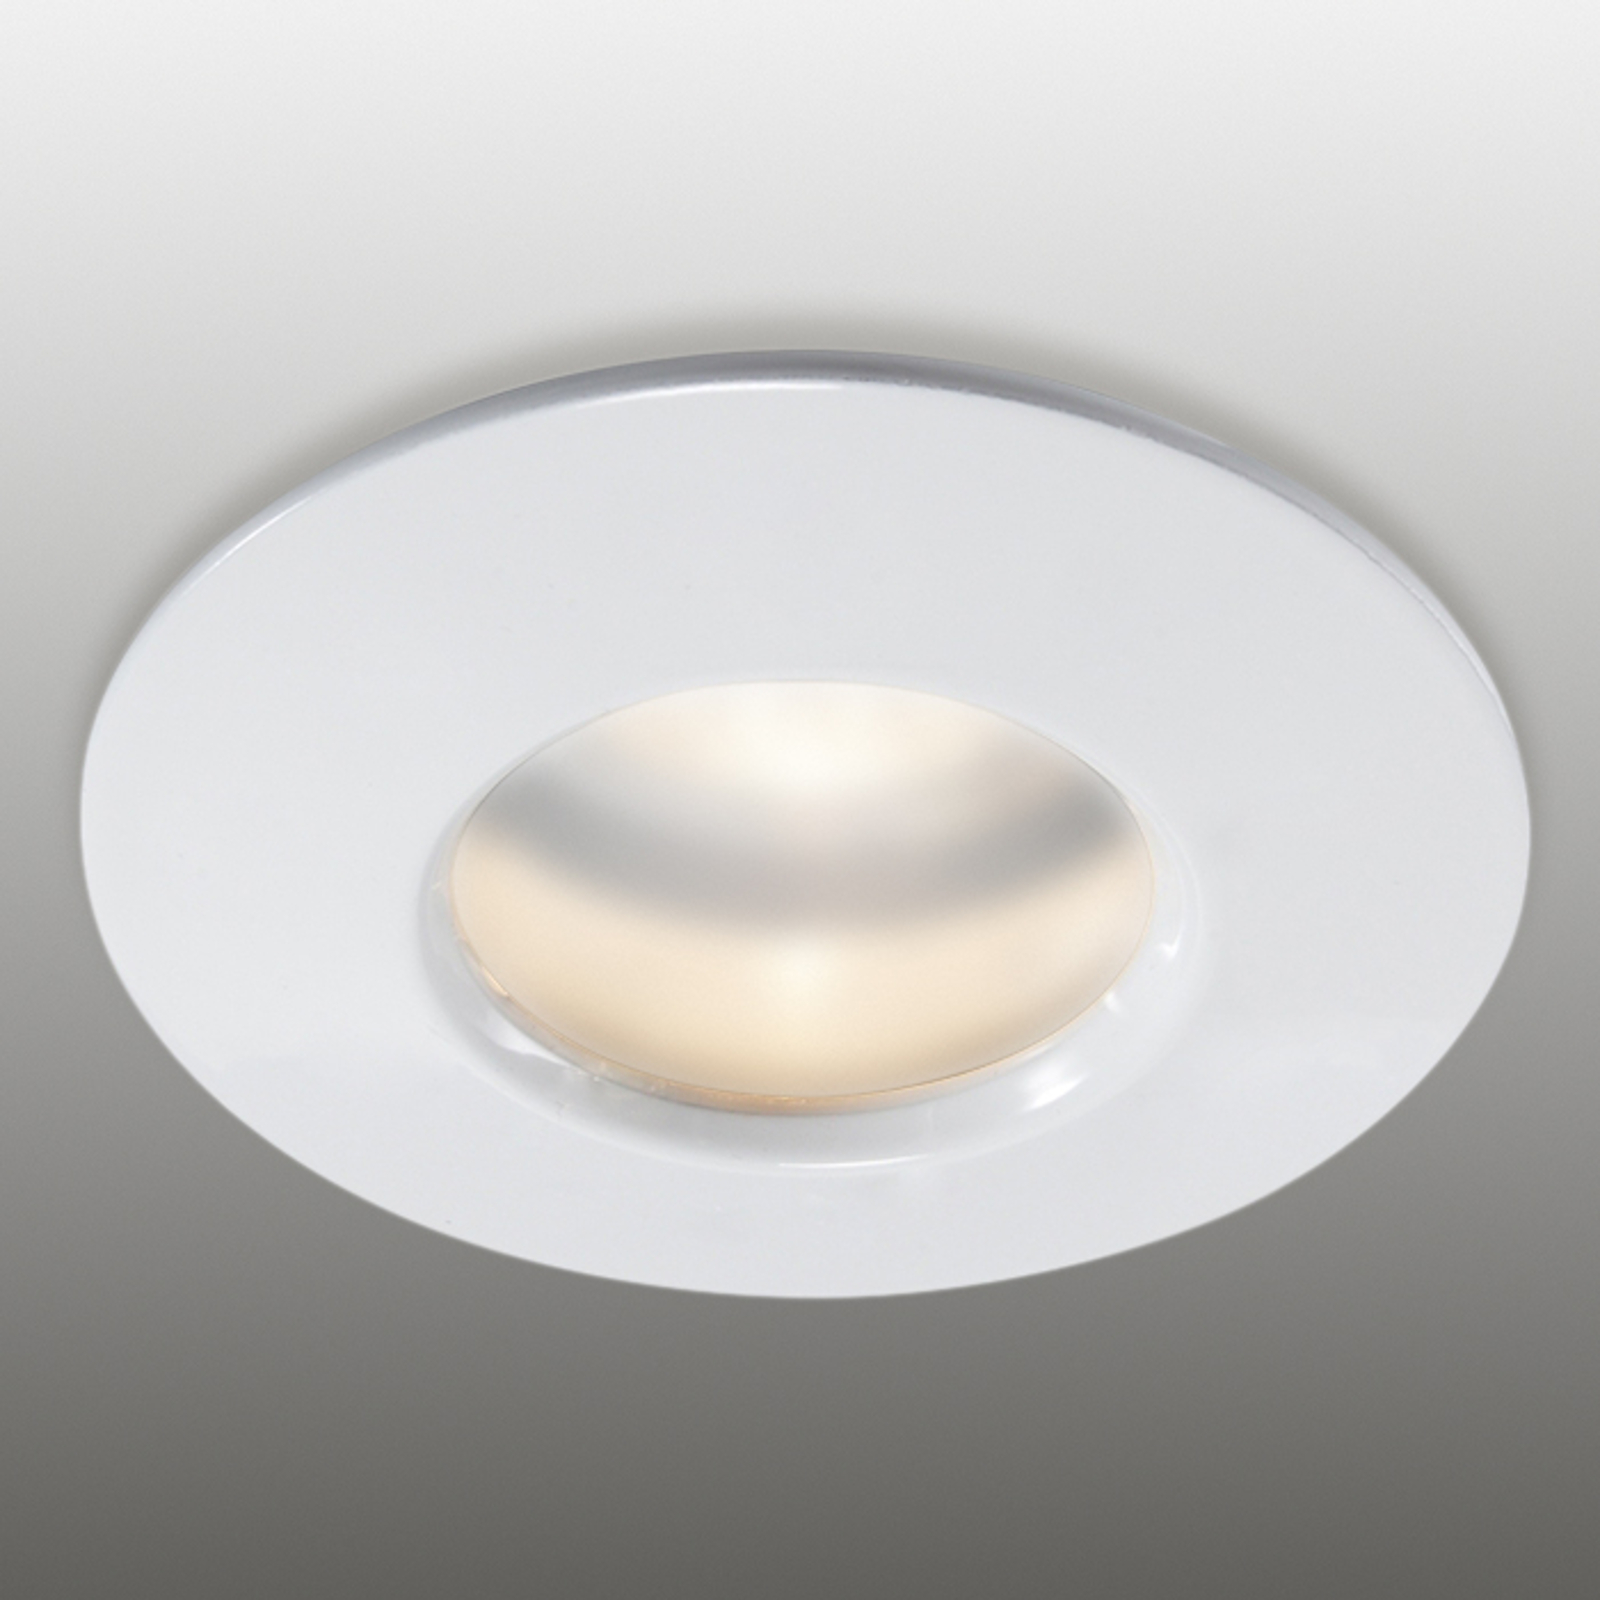 Fixed recessed light_2501604_1